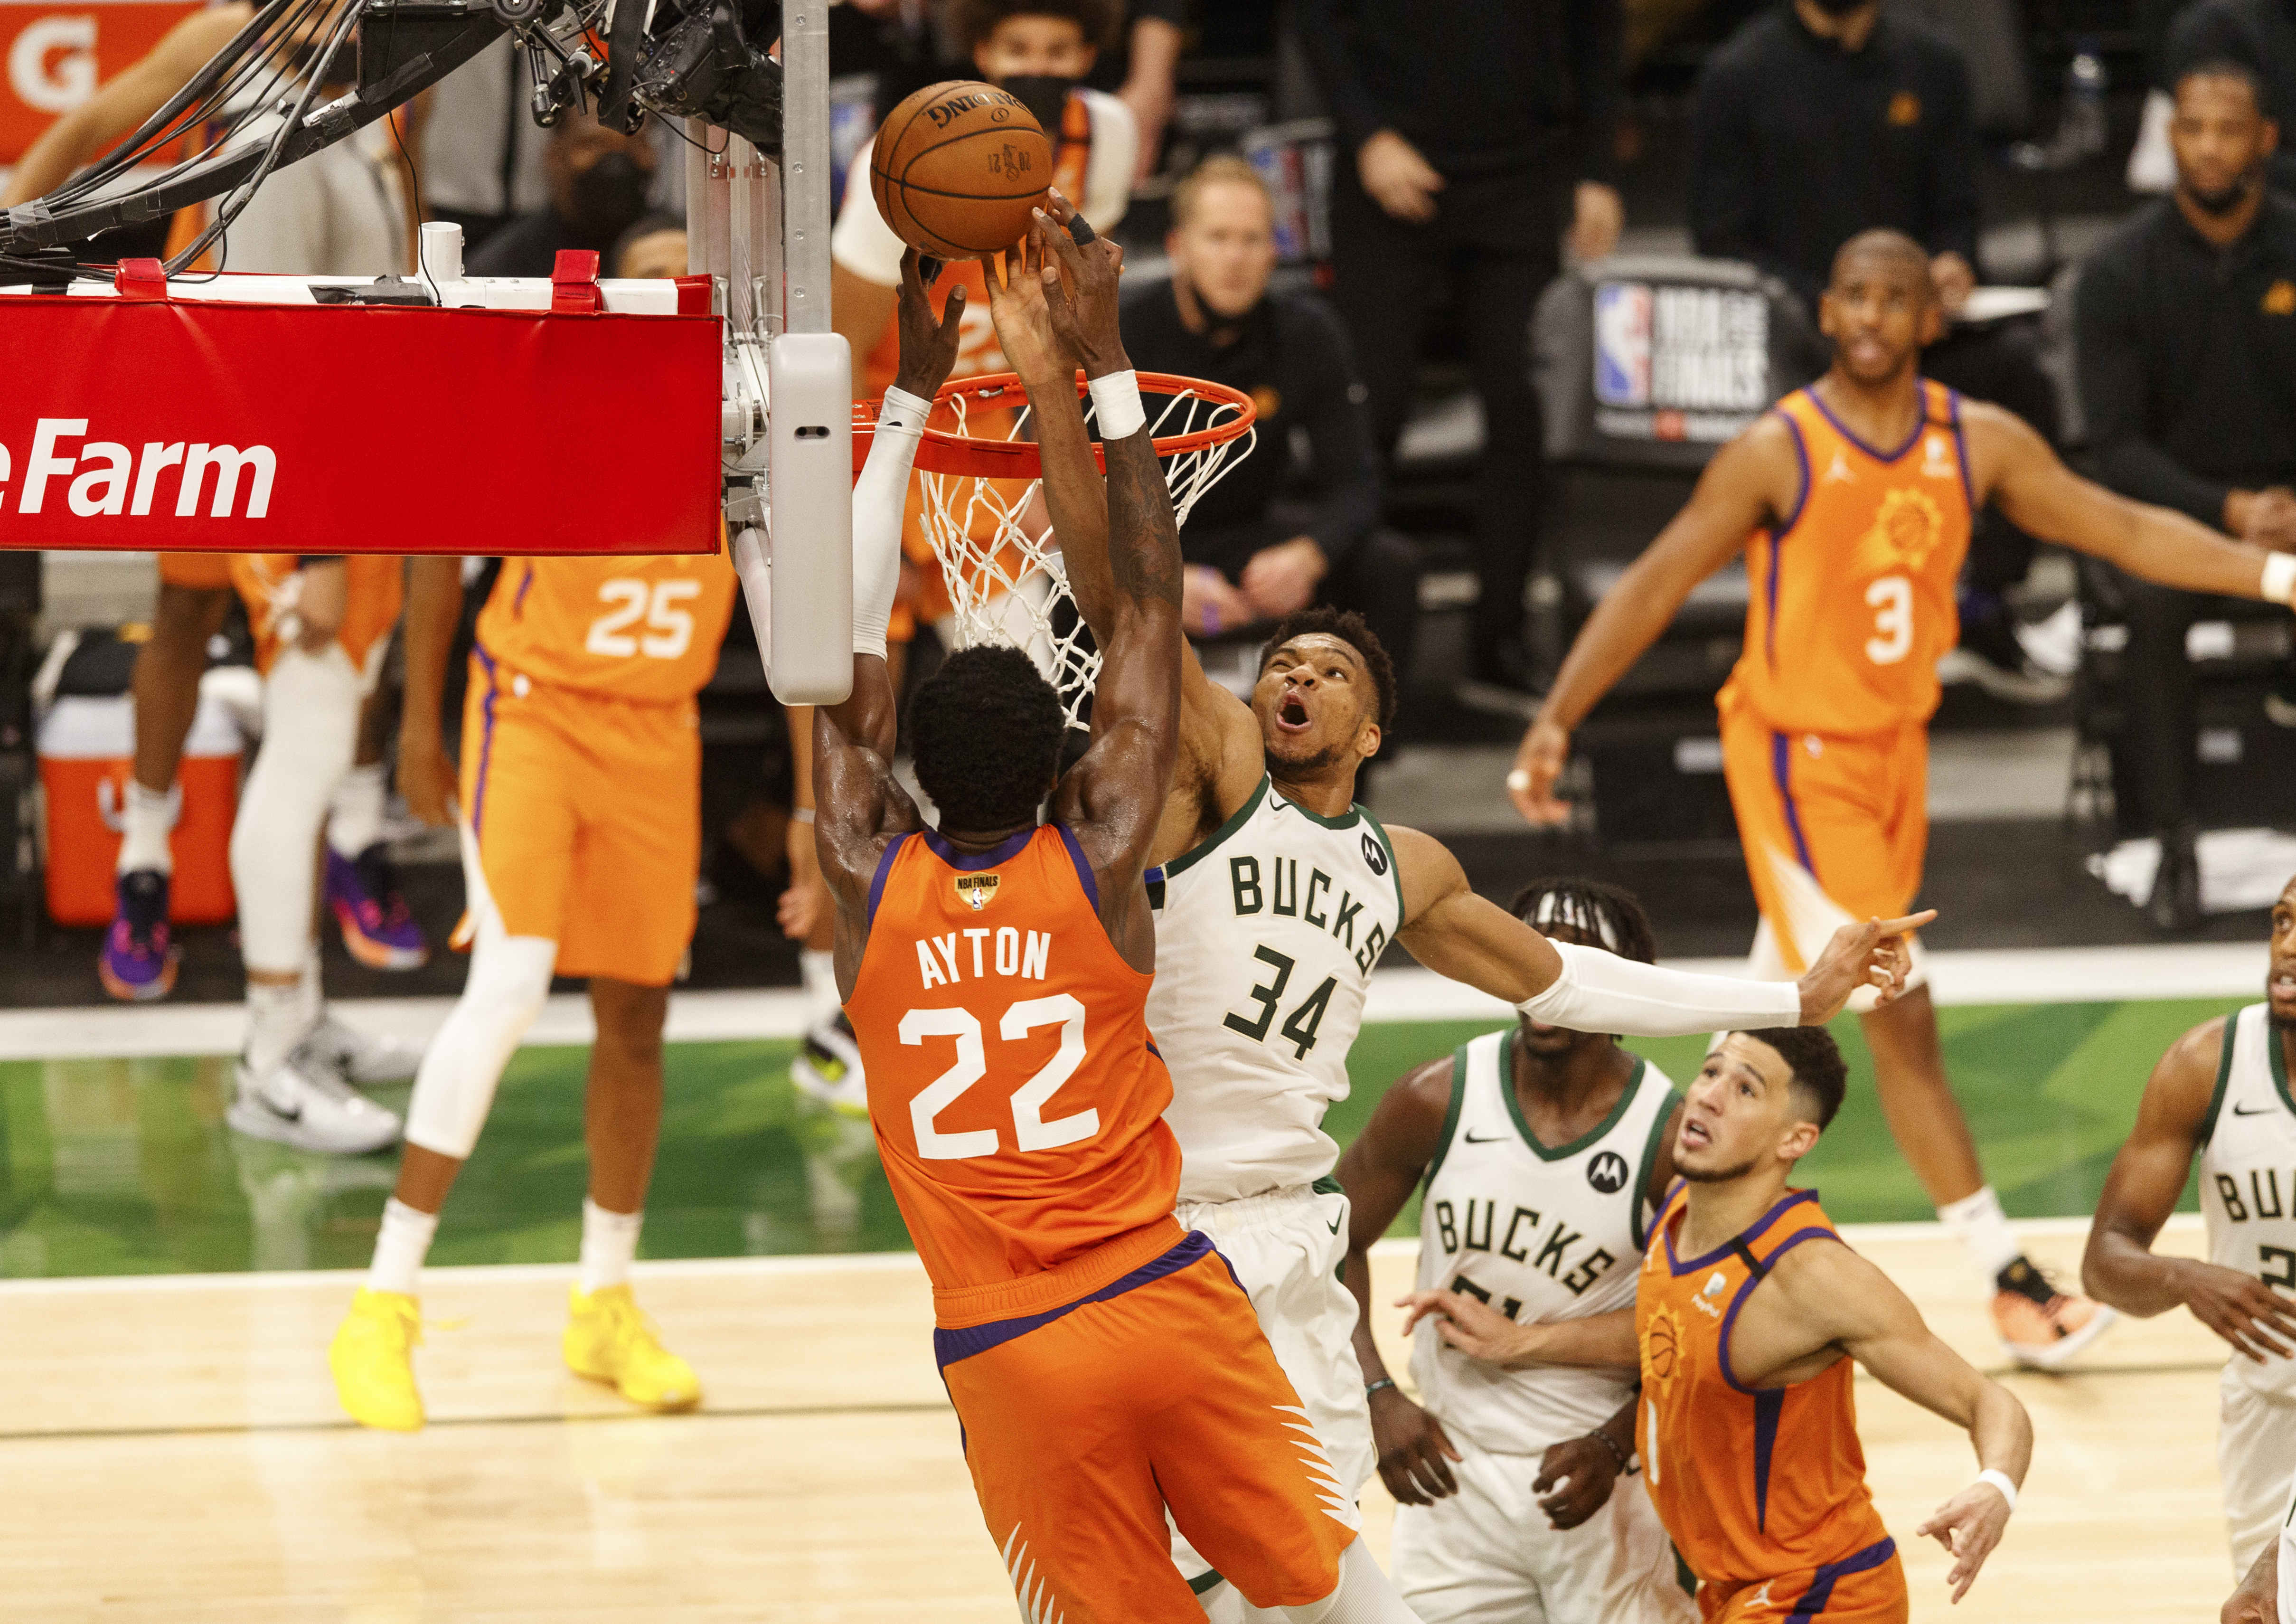 Jul 14, 2021; Milwaukee, Wisconsin, USA; Milwaukee Bucks forward Giannis Antetokounmpo (34) defends Phoenix Suns center Deandre Ayton (22) during the fourth quarter during game four of the 2021 NBA Finals at Fiserv Forum. Mandatory Credit: Jeff Hanisch-USA TODAY Sports